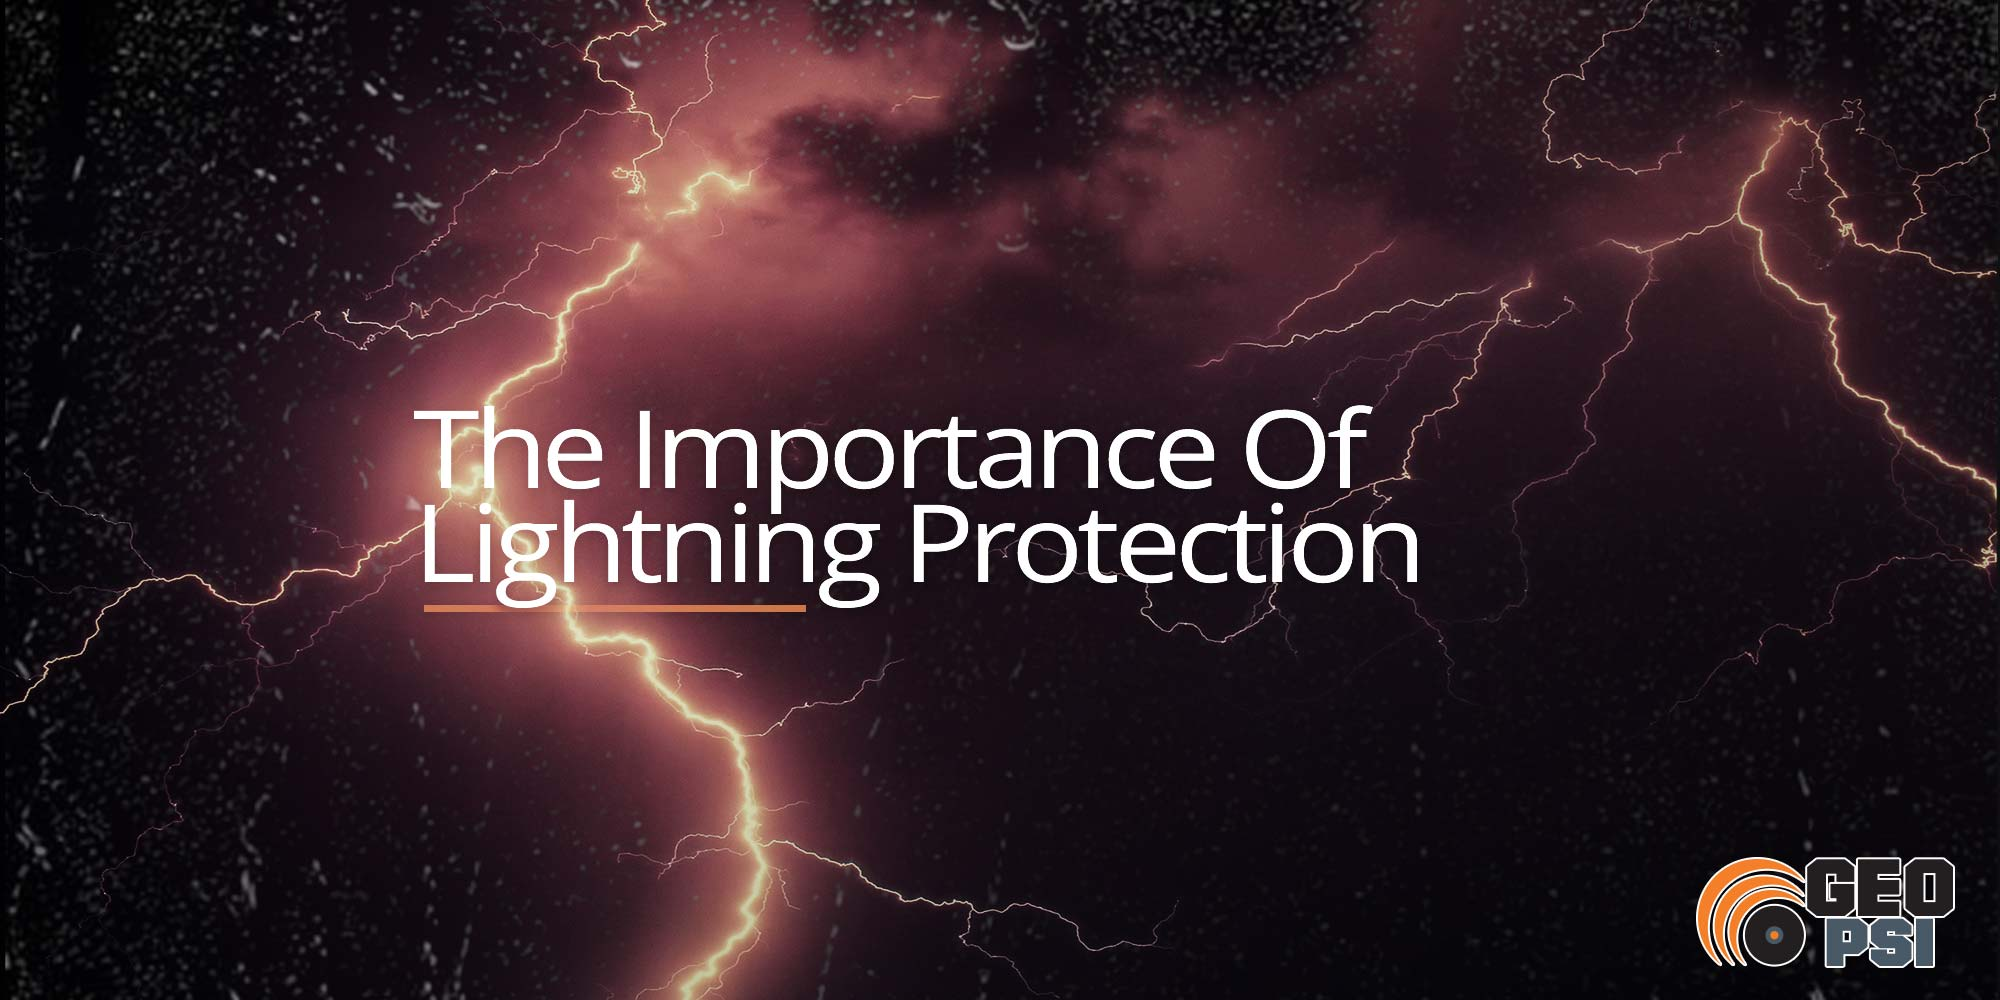 The Importance Of Lightning Protection